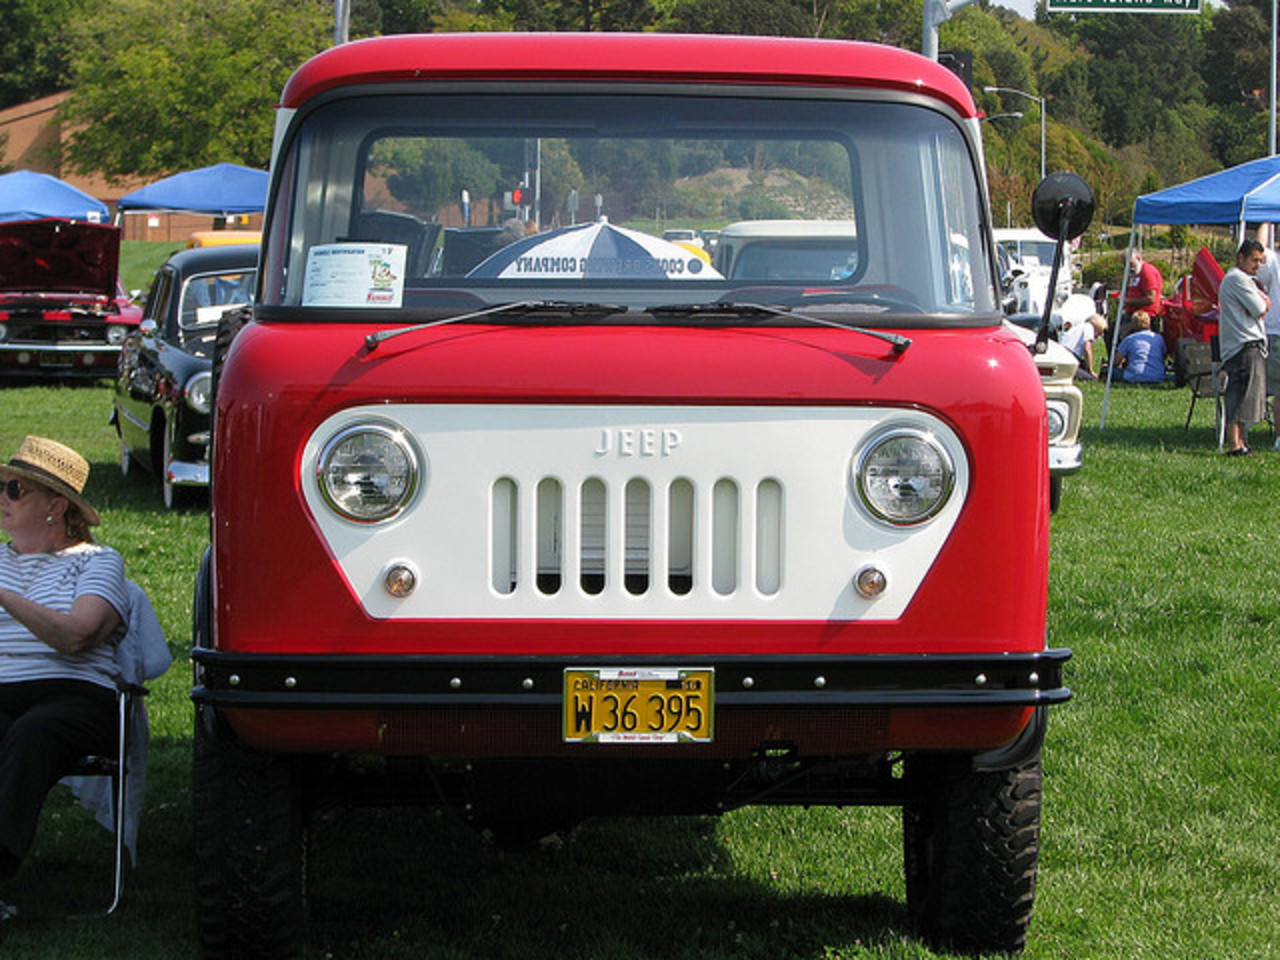 1960 Willys Jeep FC 170 C.O.E. Truck 'W 36 395' 1 | Flickr - Photo ...